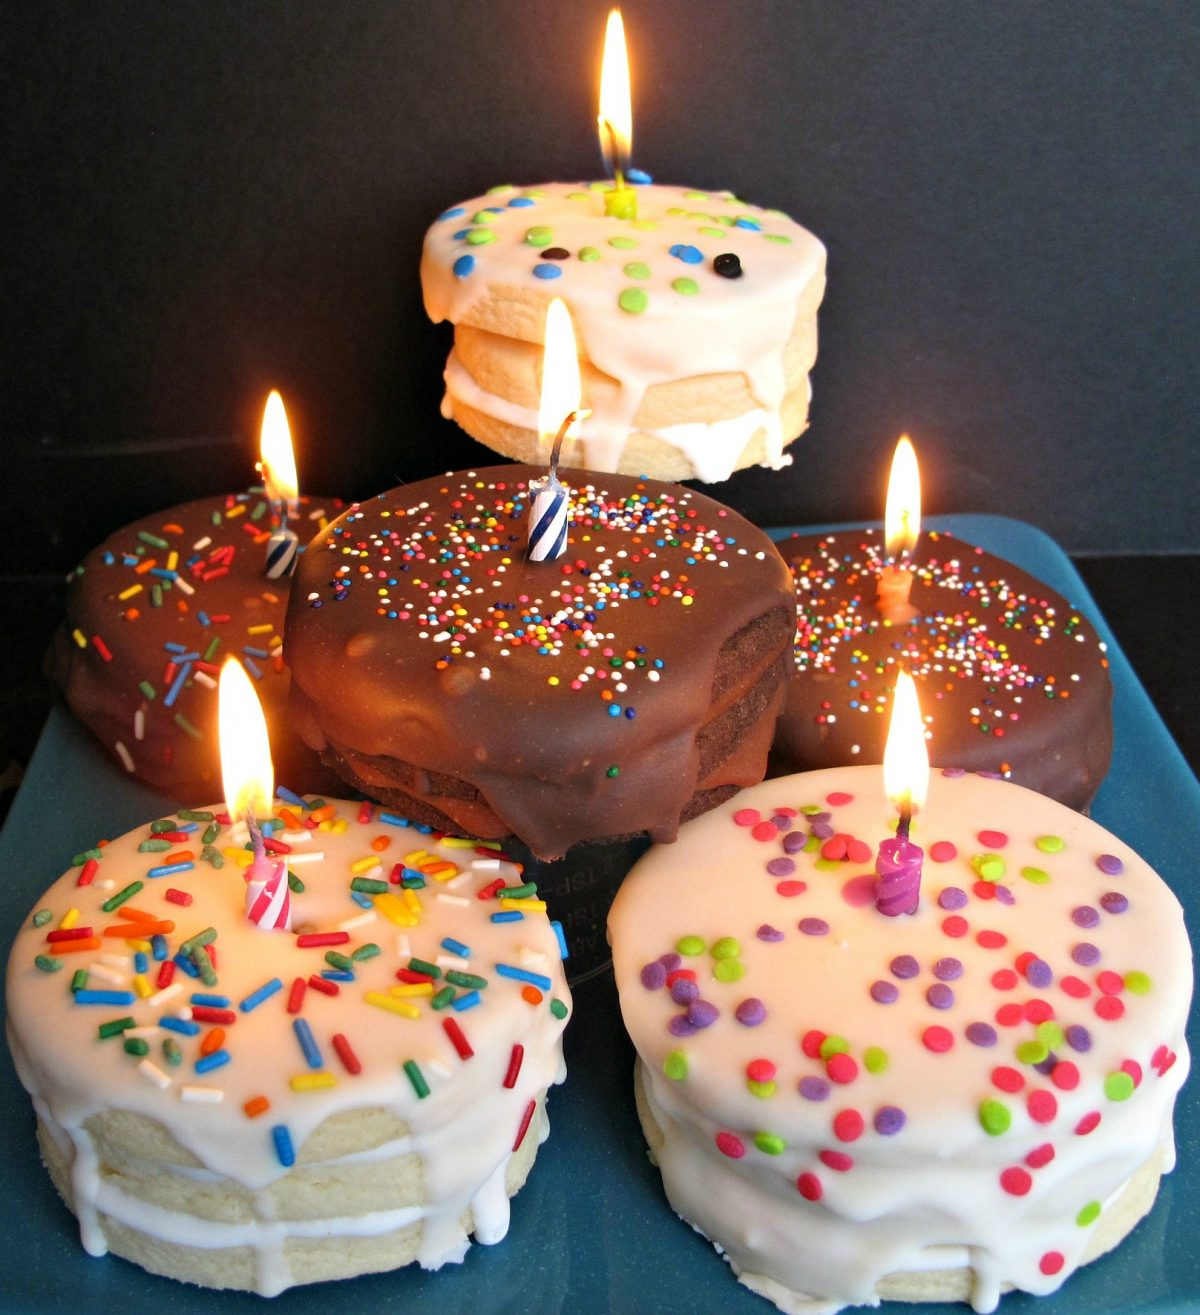 Birthday Cake Surprise Cookies that look like little birthday cakes with lit candles on top.